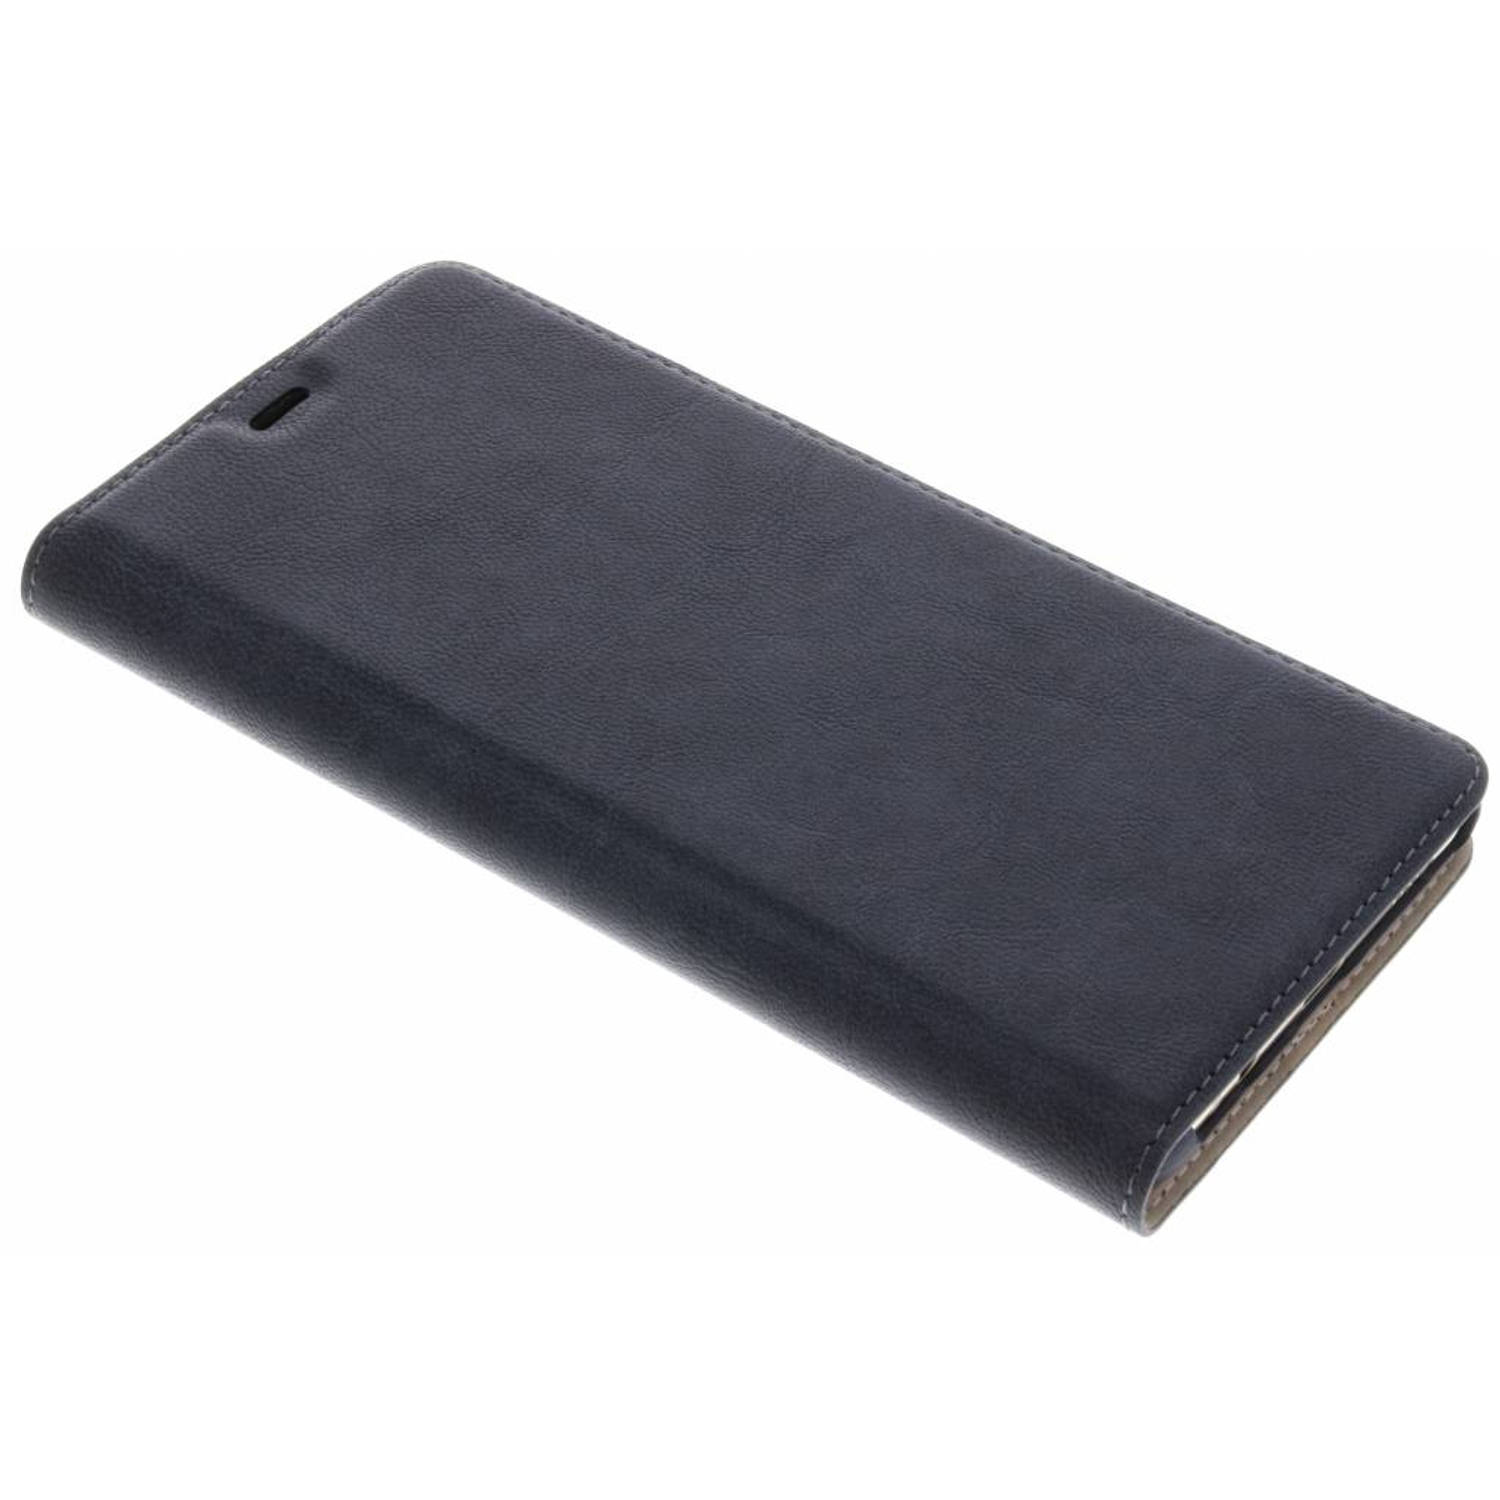 Zwarte Slim Booklet Case voor de Samsung Galaxy Note 8